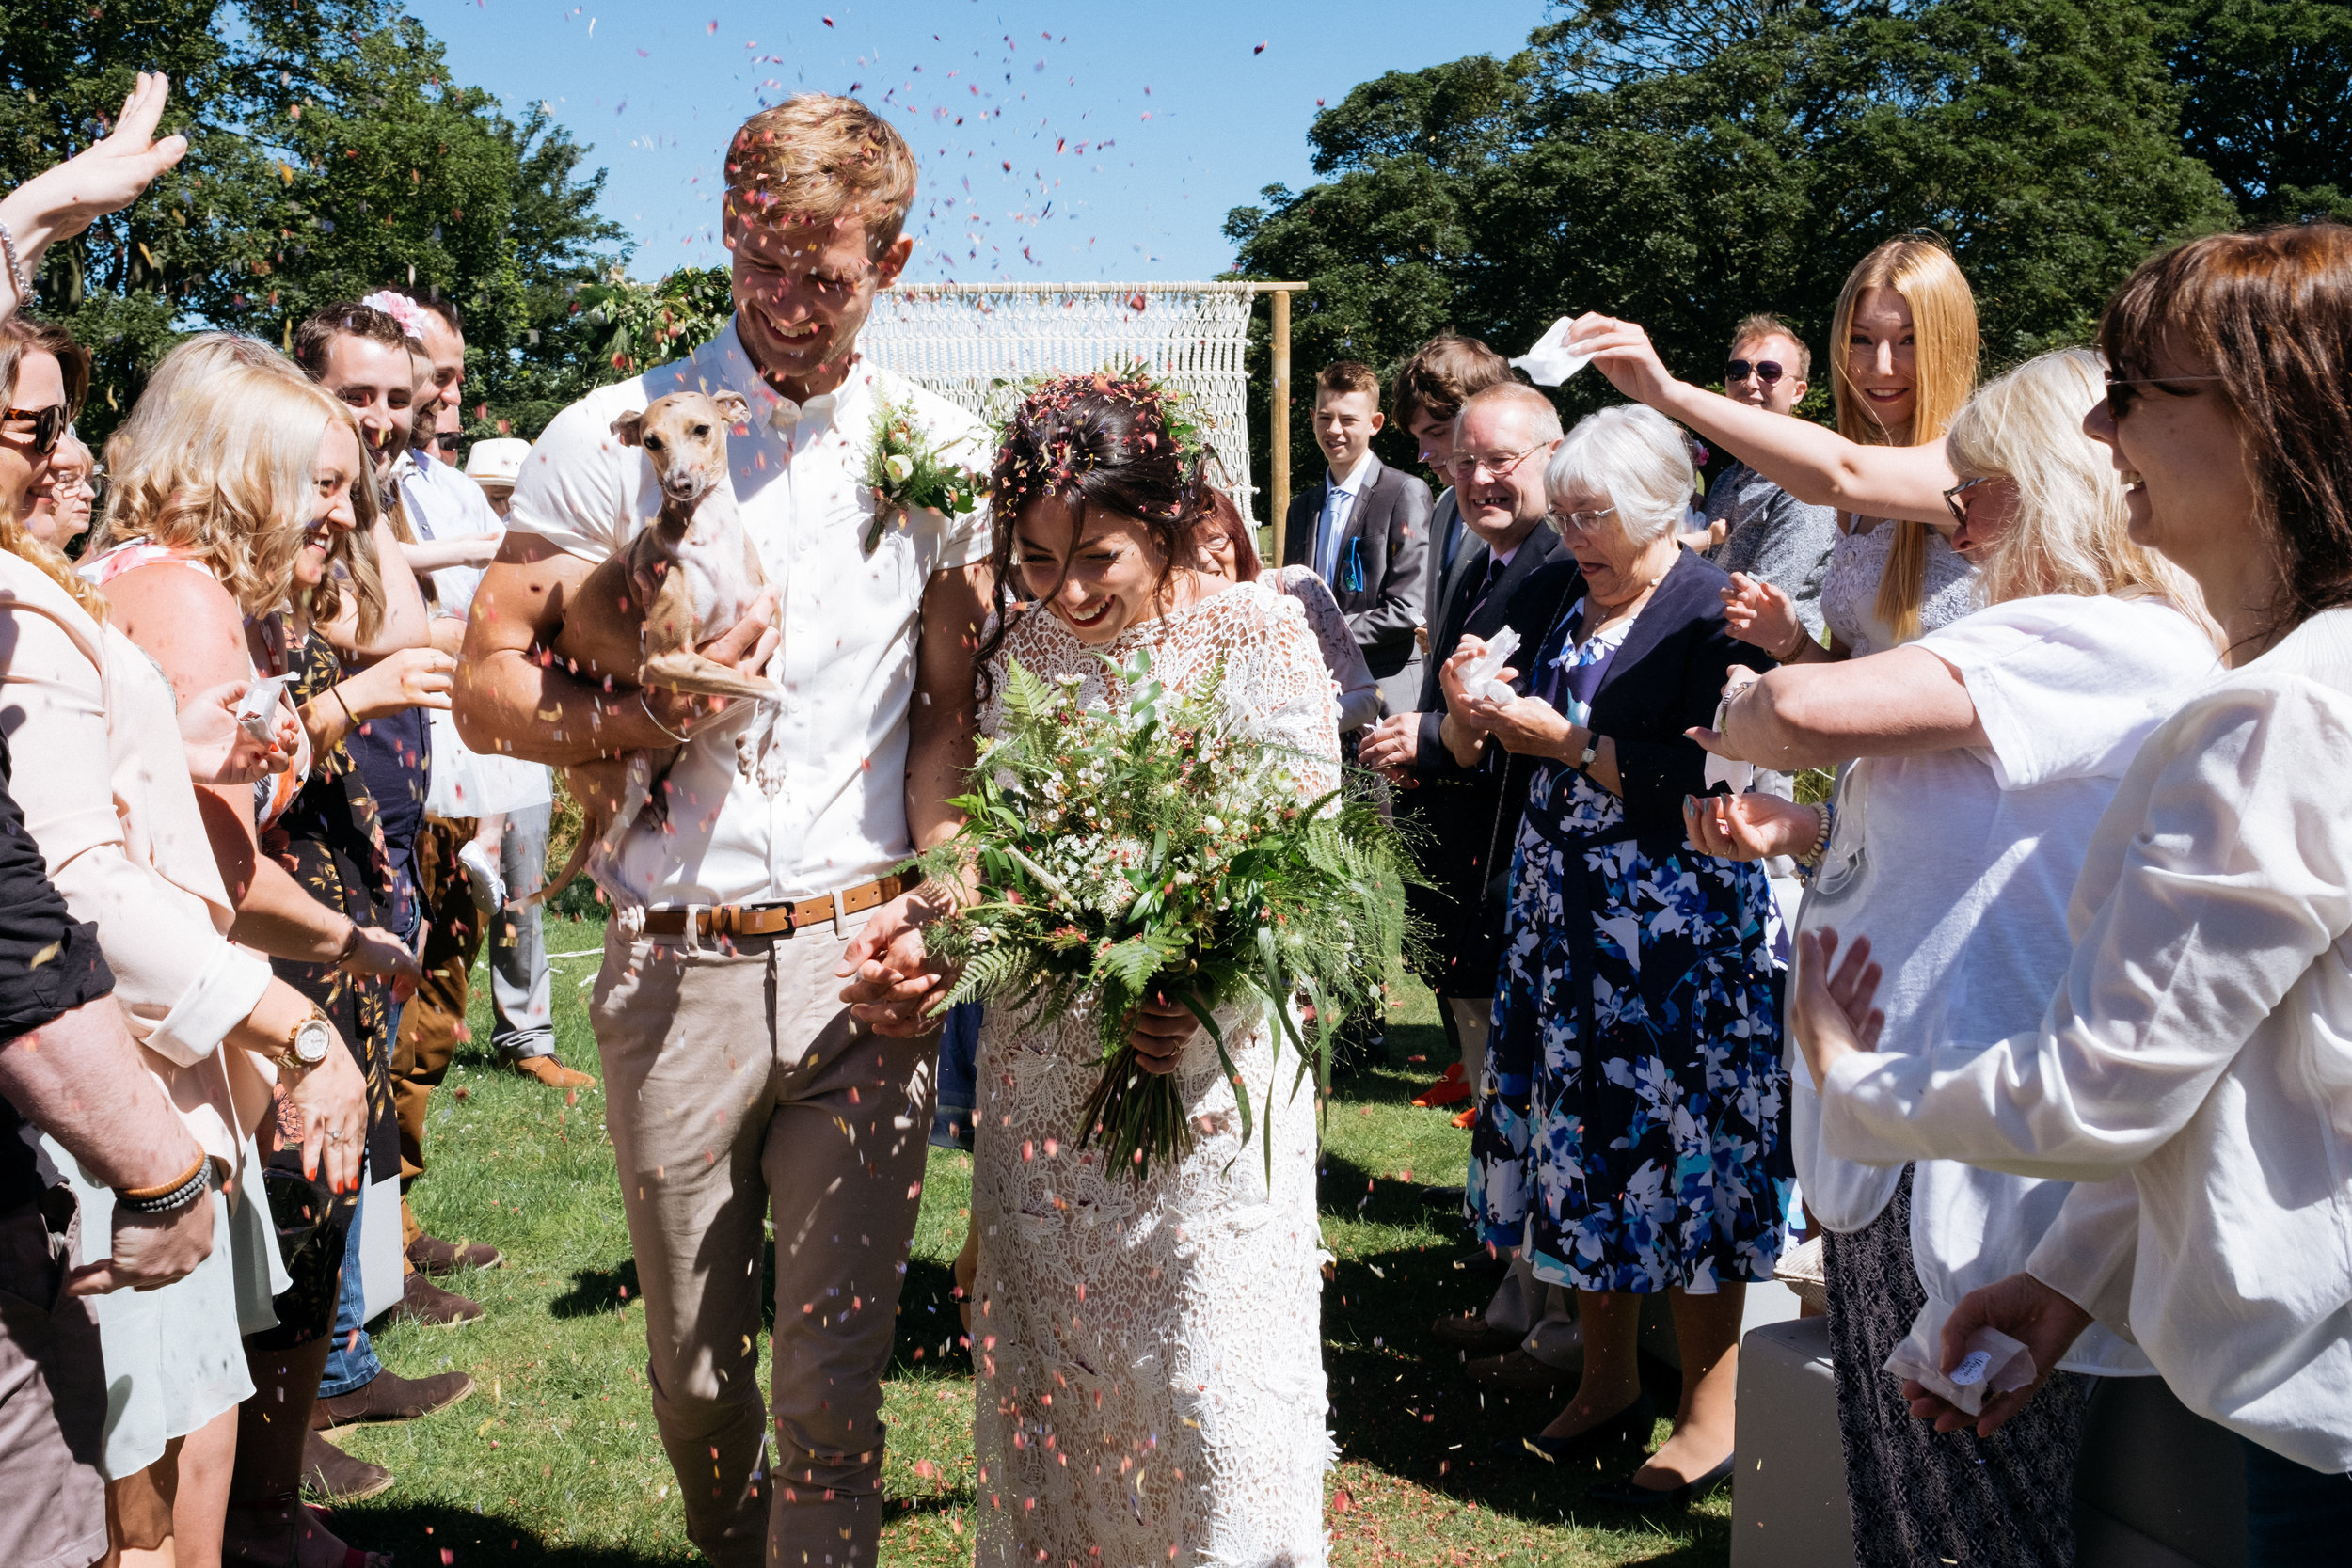 Bride and groom get confetti thrown at them